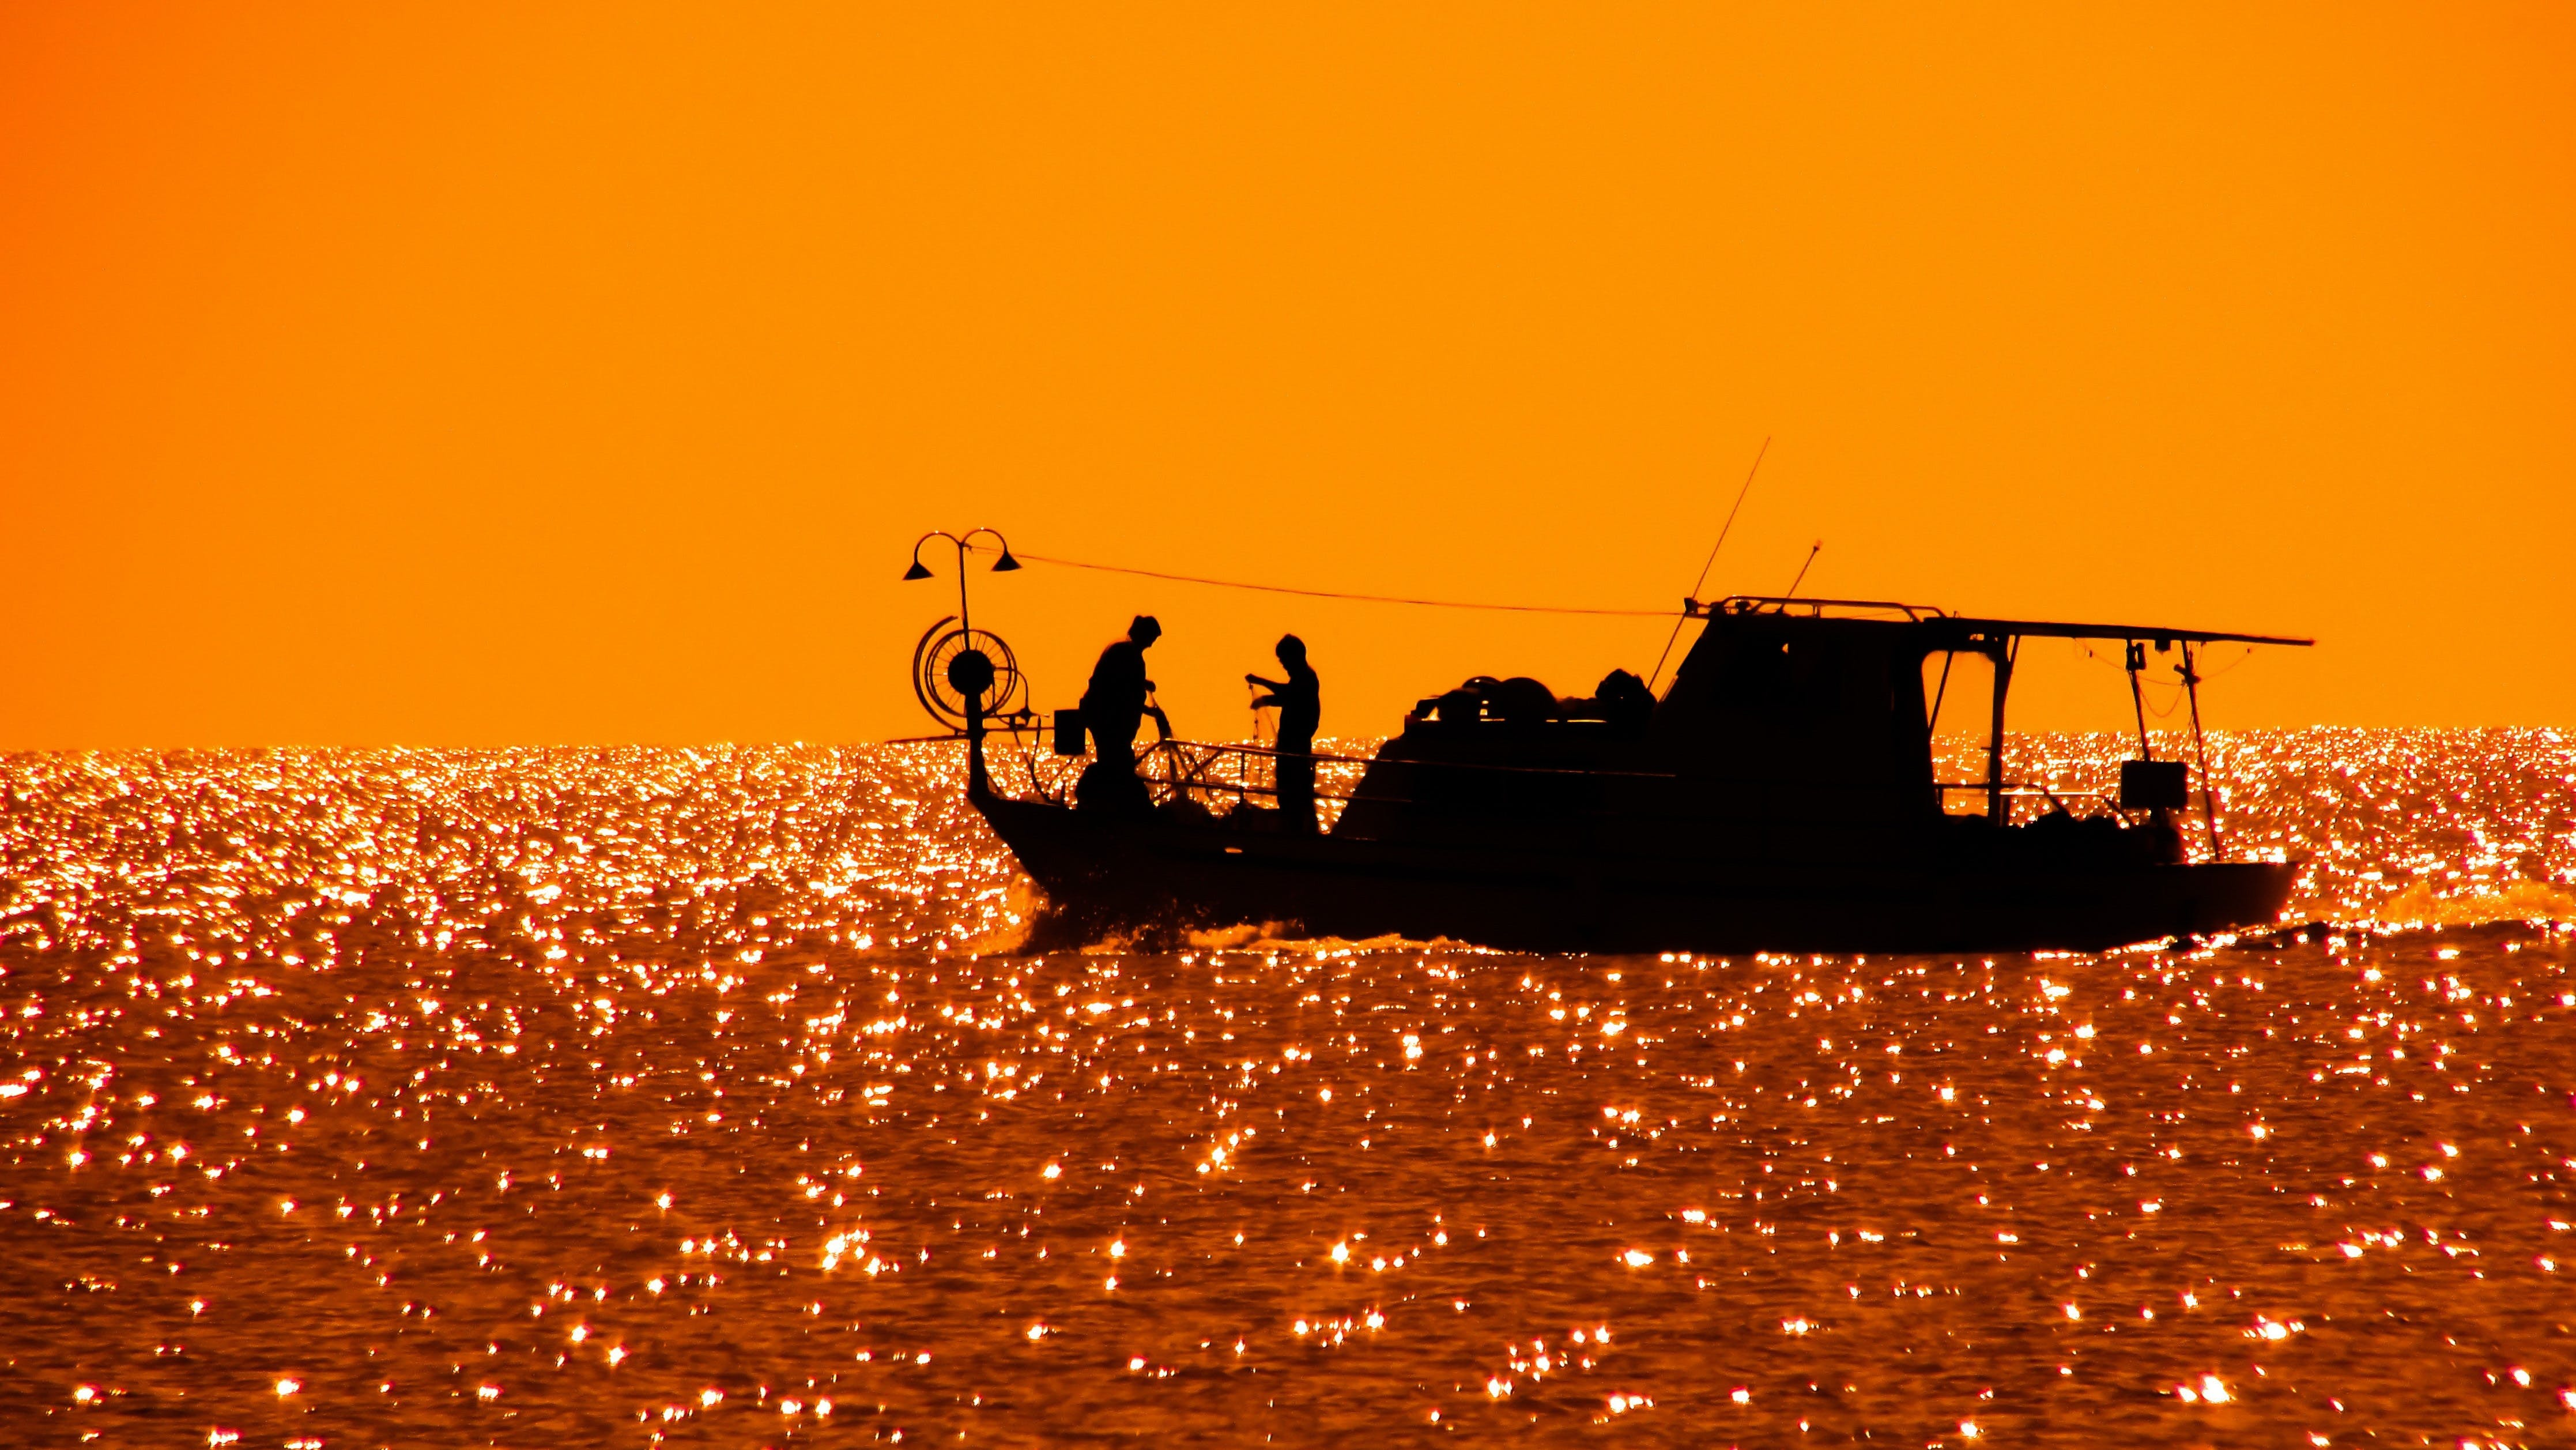 Silhouette of Fishing Vessel Floating on Body of Water